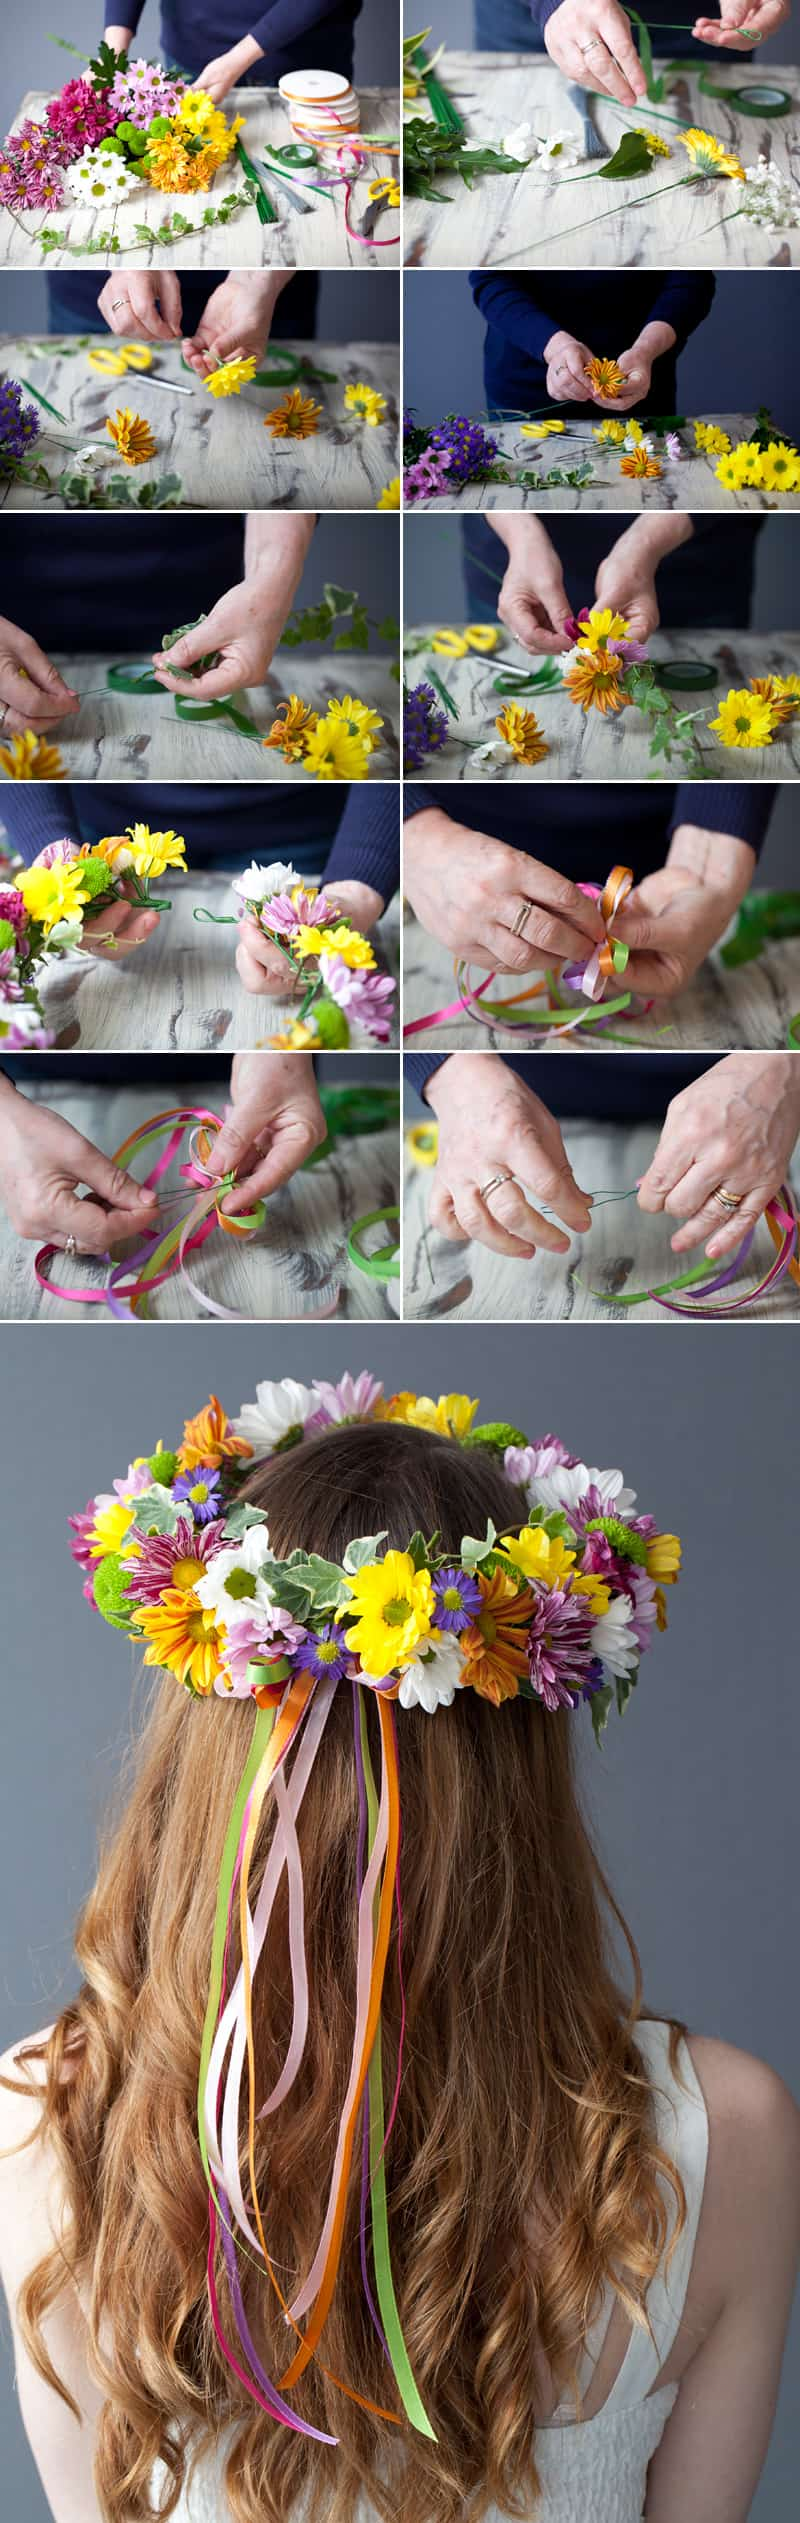 How to Make a Vibrant Hair Garland DIY